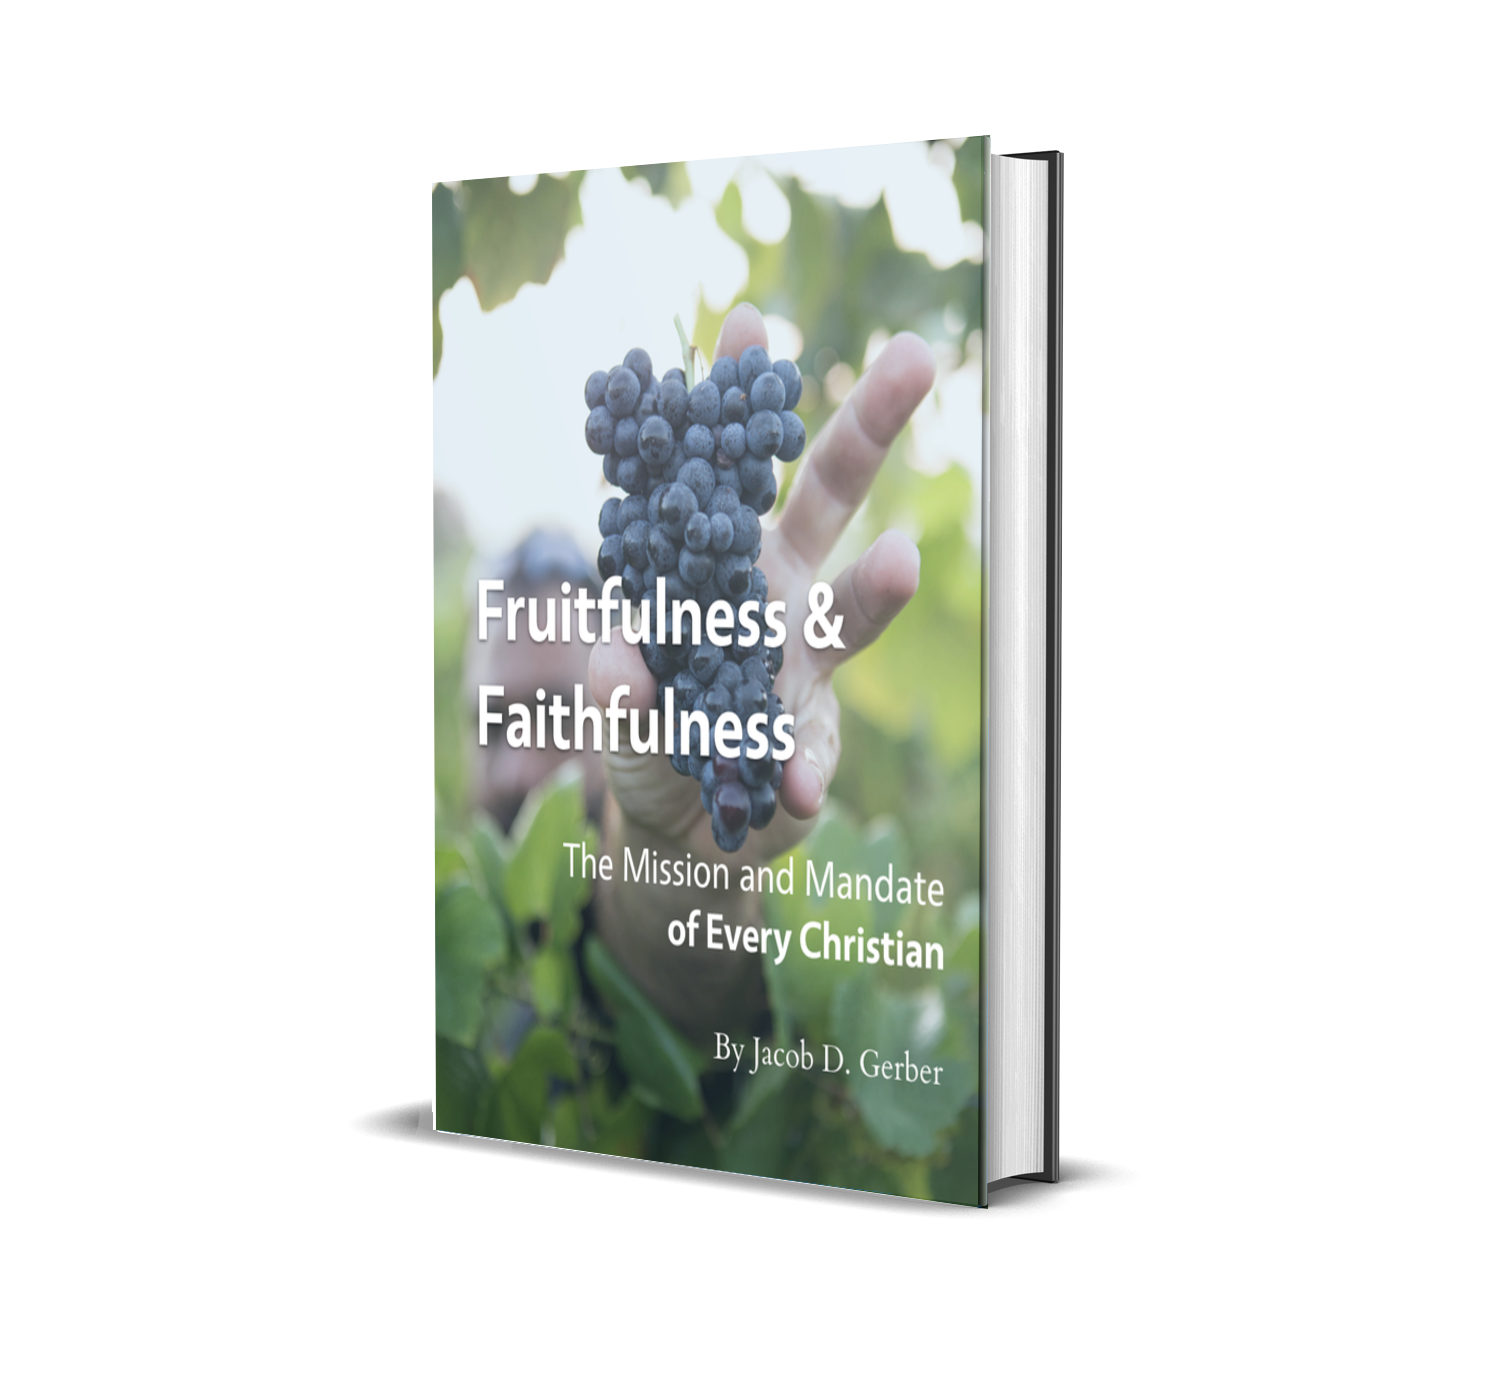 Fruitfulness & Faithfulness: The Mission and Mandate of Every Christian